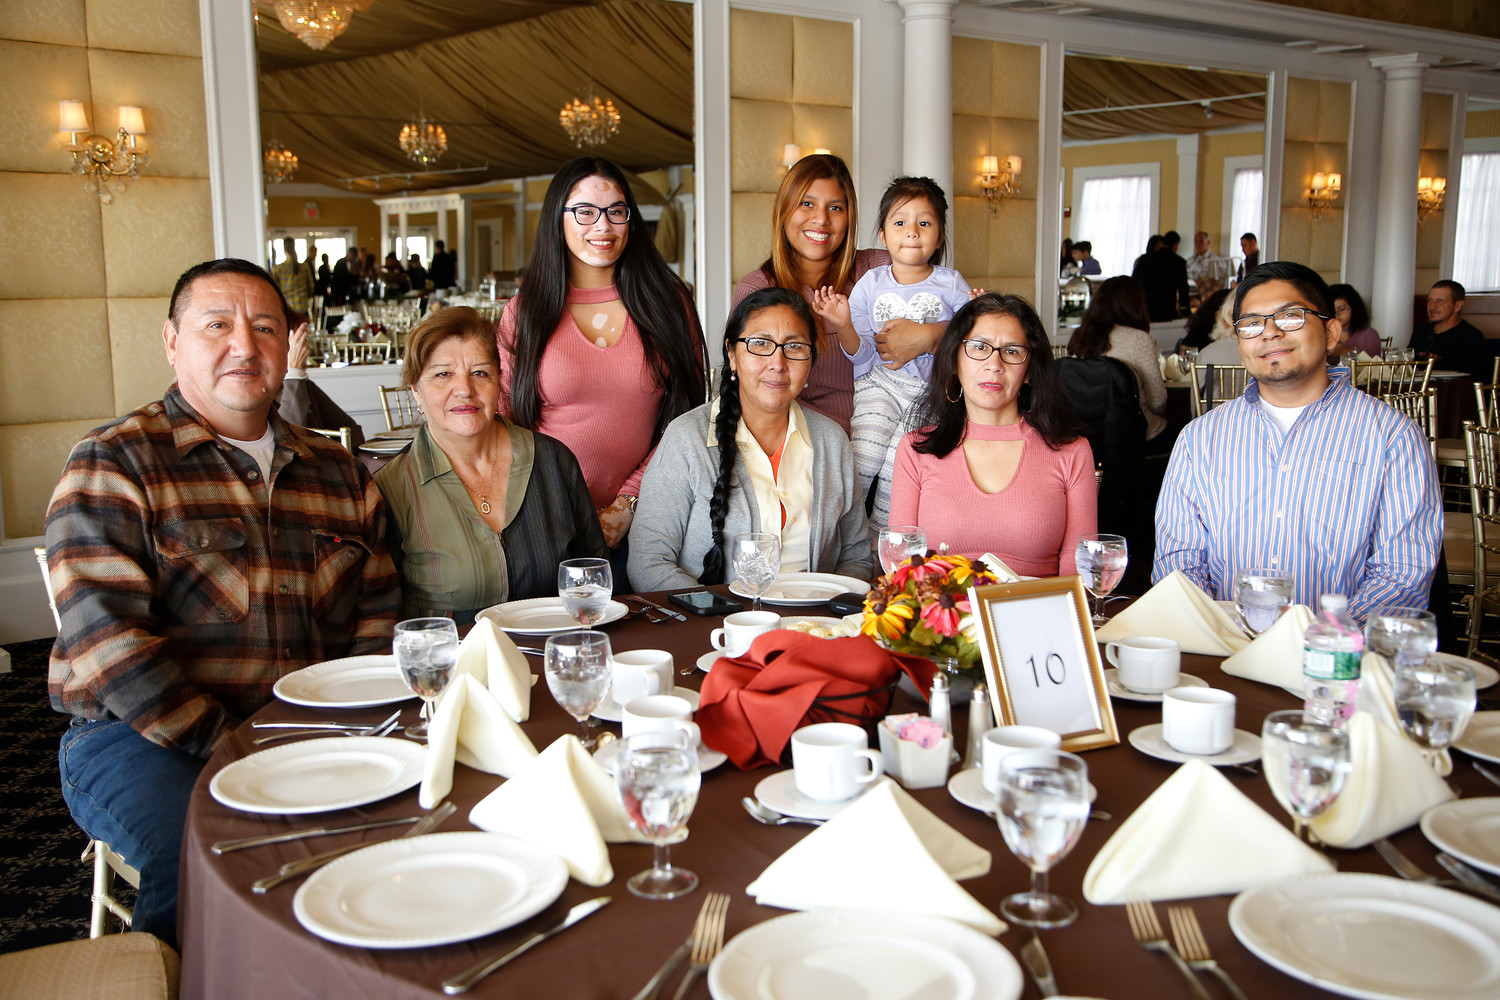 The Acuna, Ruano and Galeano families gathered together for a Thanksgiving meal at the Bridgeview Yacht Club courtesy of owner John Vitale.